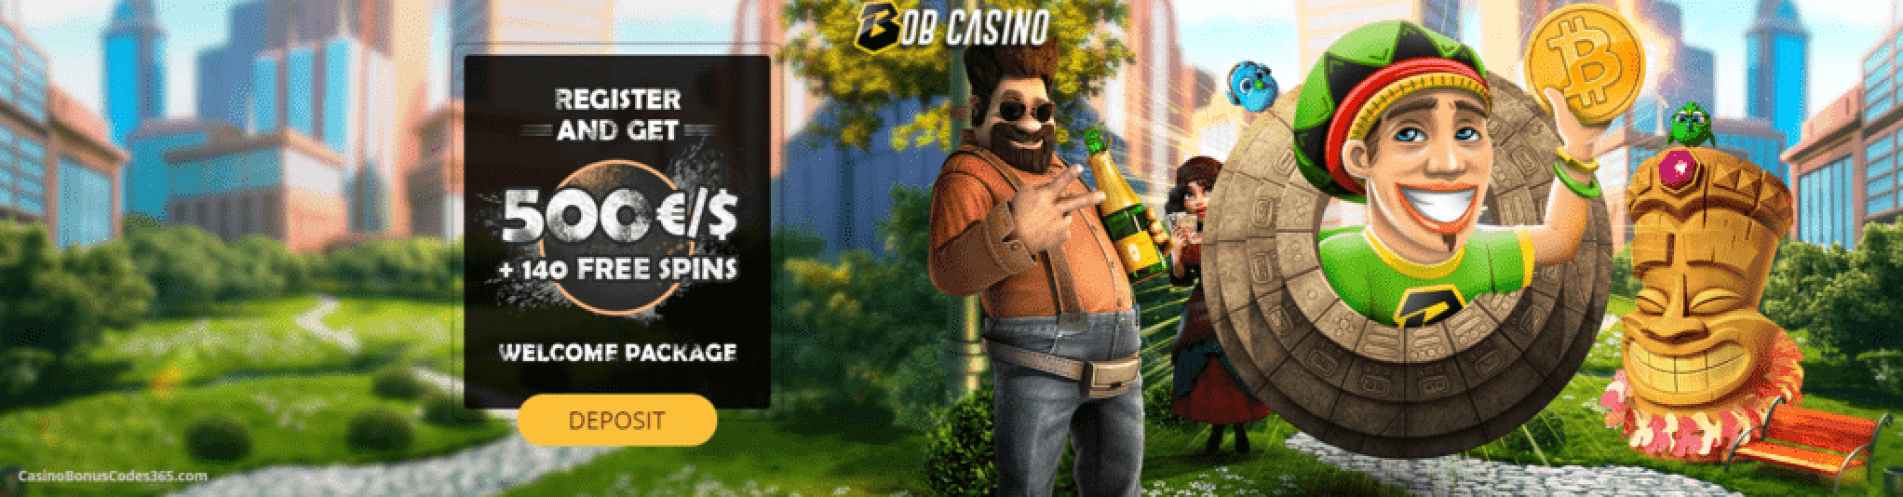 Bob Casino Welcome Package €500 plus 140 FREE Spins